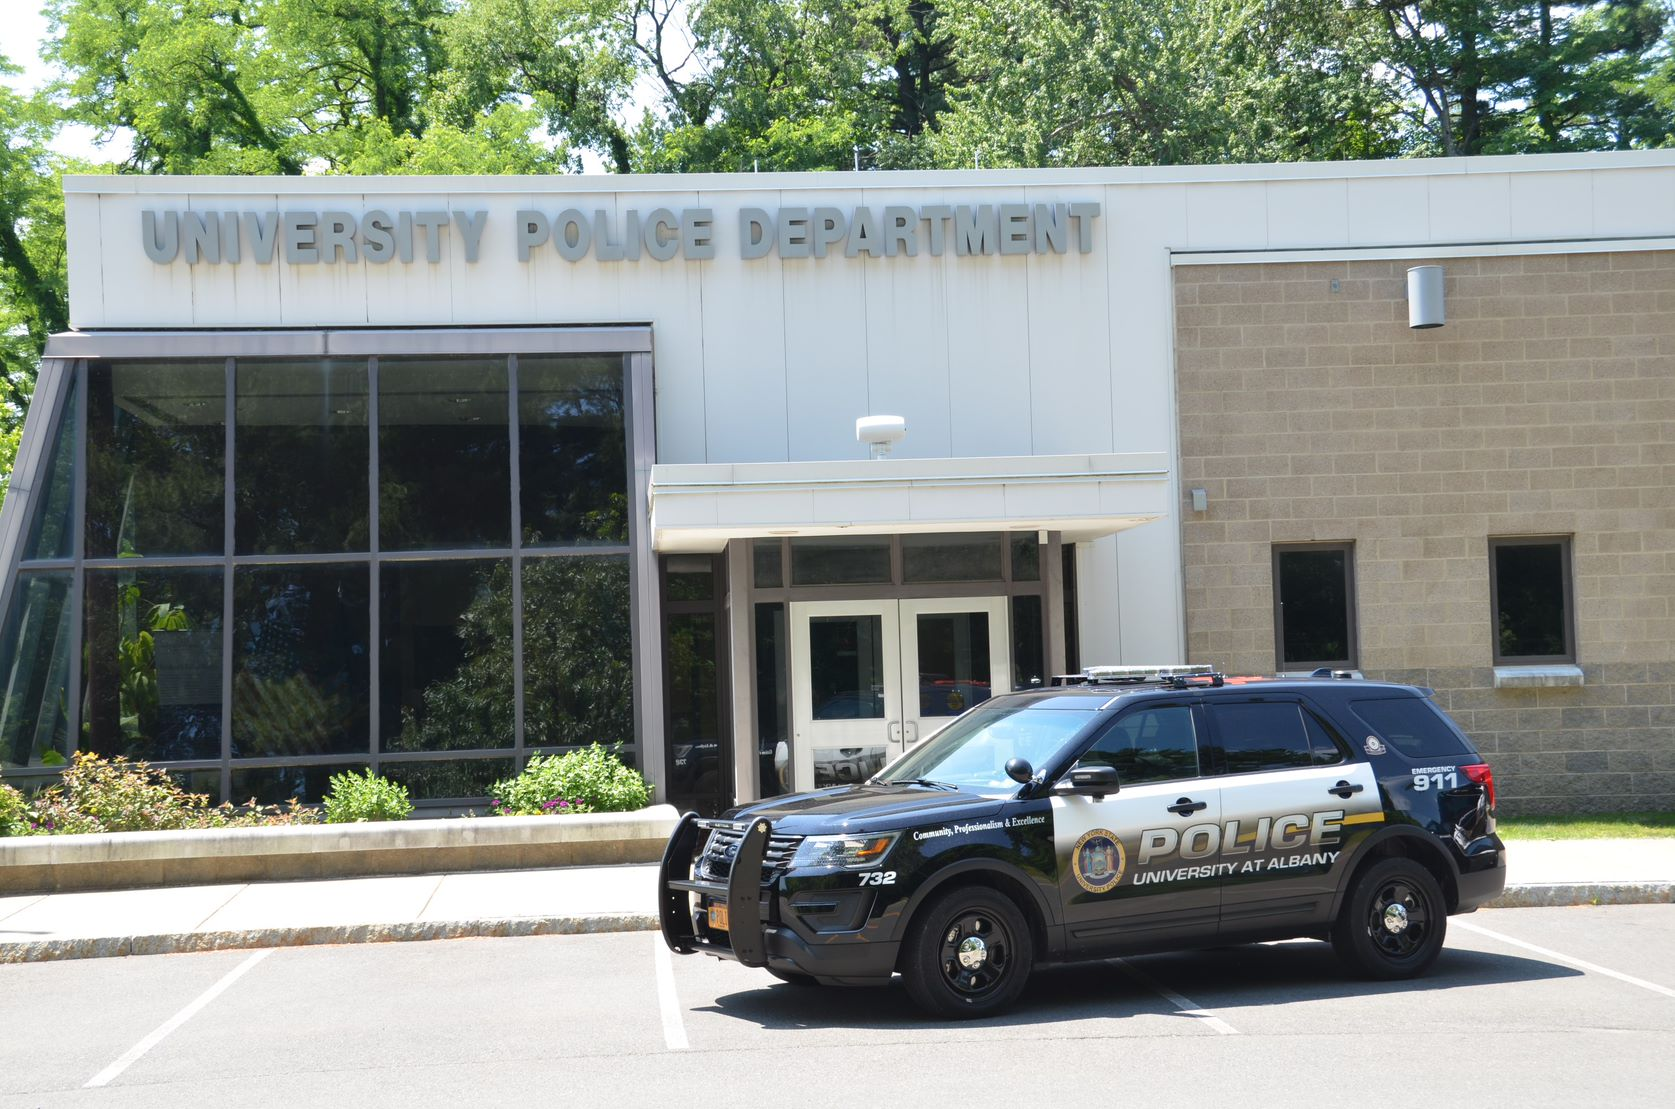 University Police Department Home   University at Albany